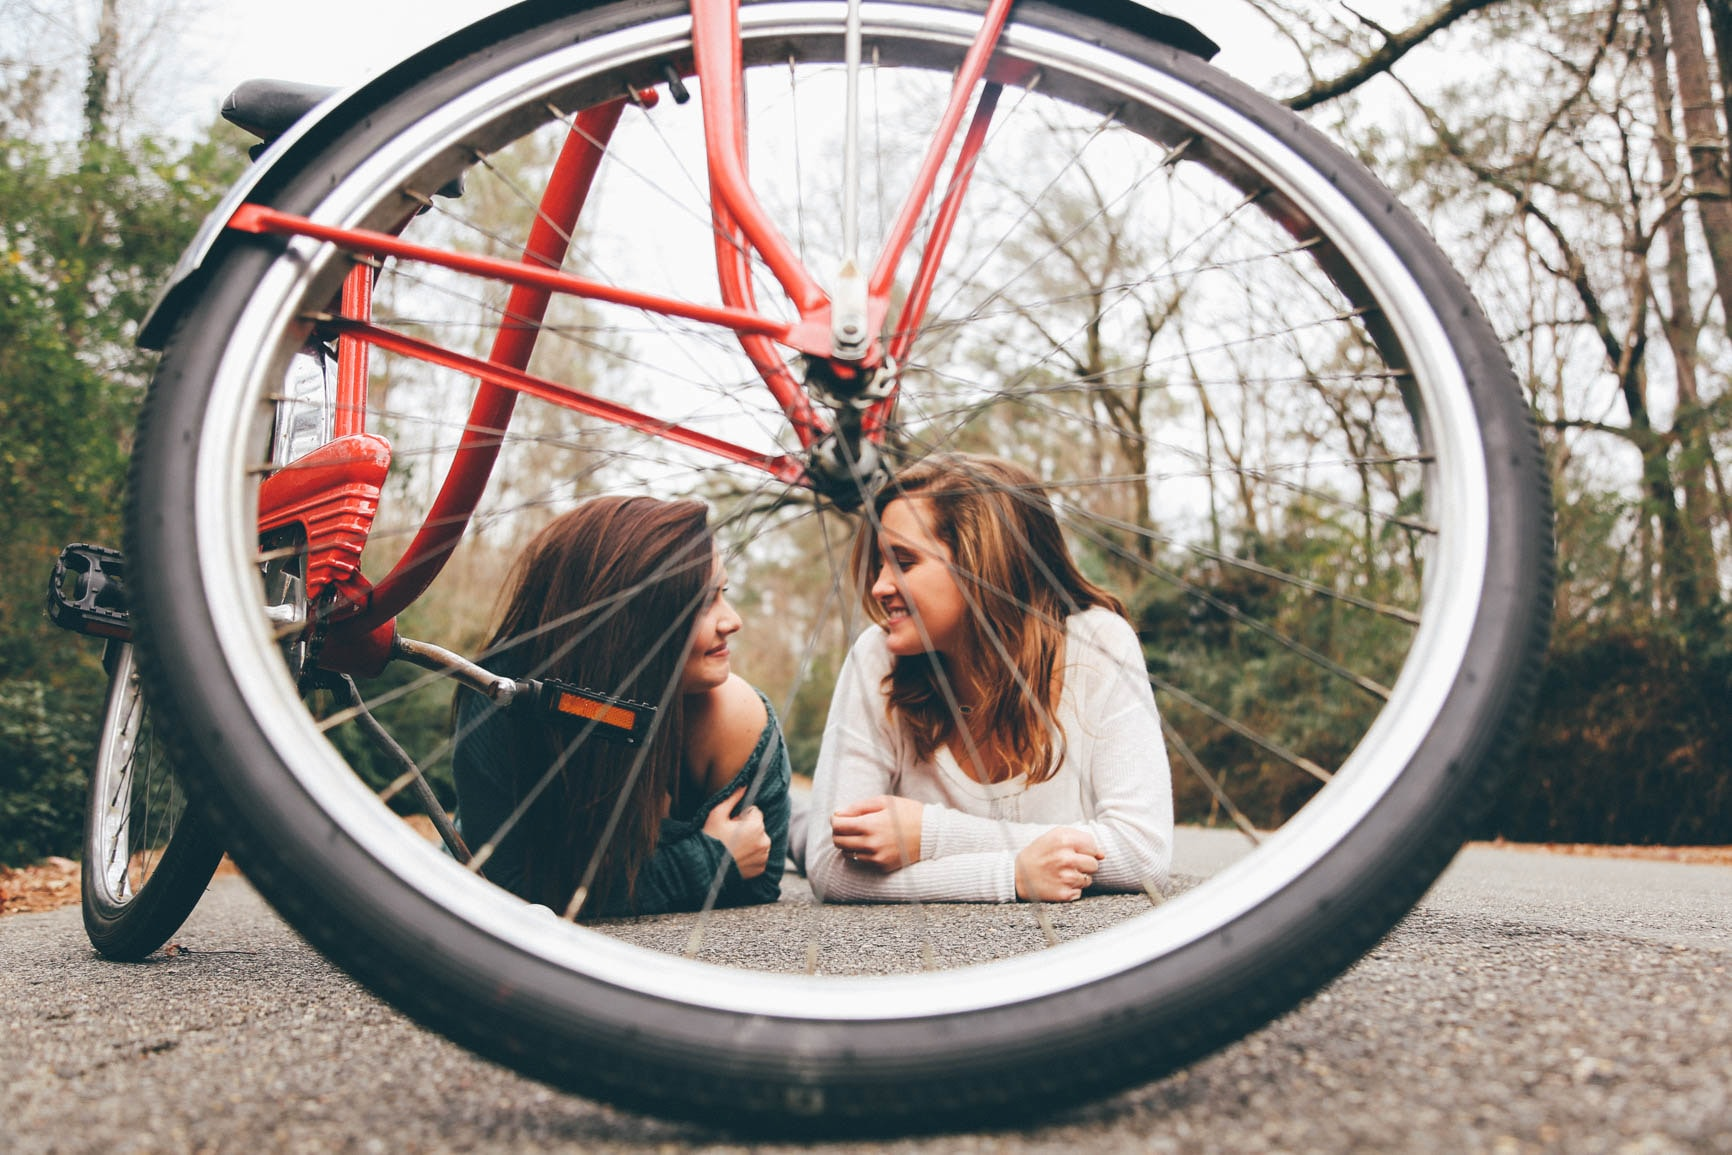 Two girls laying on a sidewalk, seen through the wheel of a parked bike